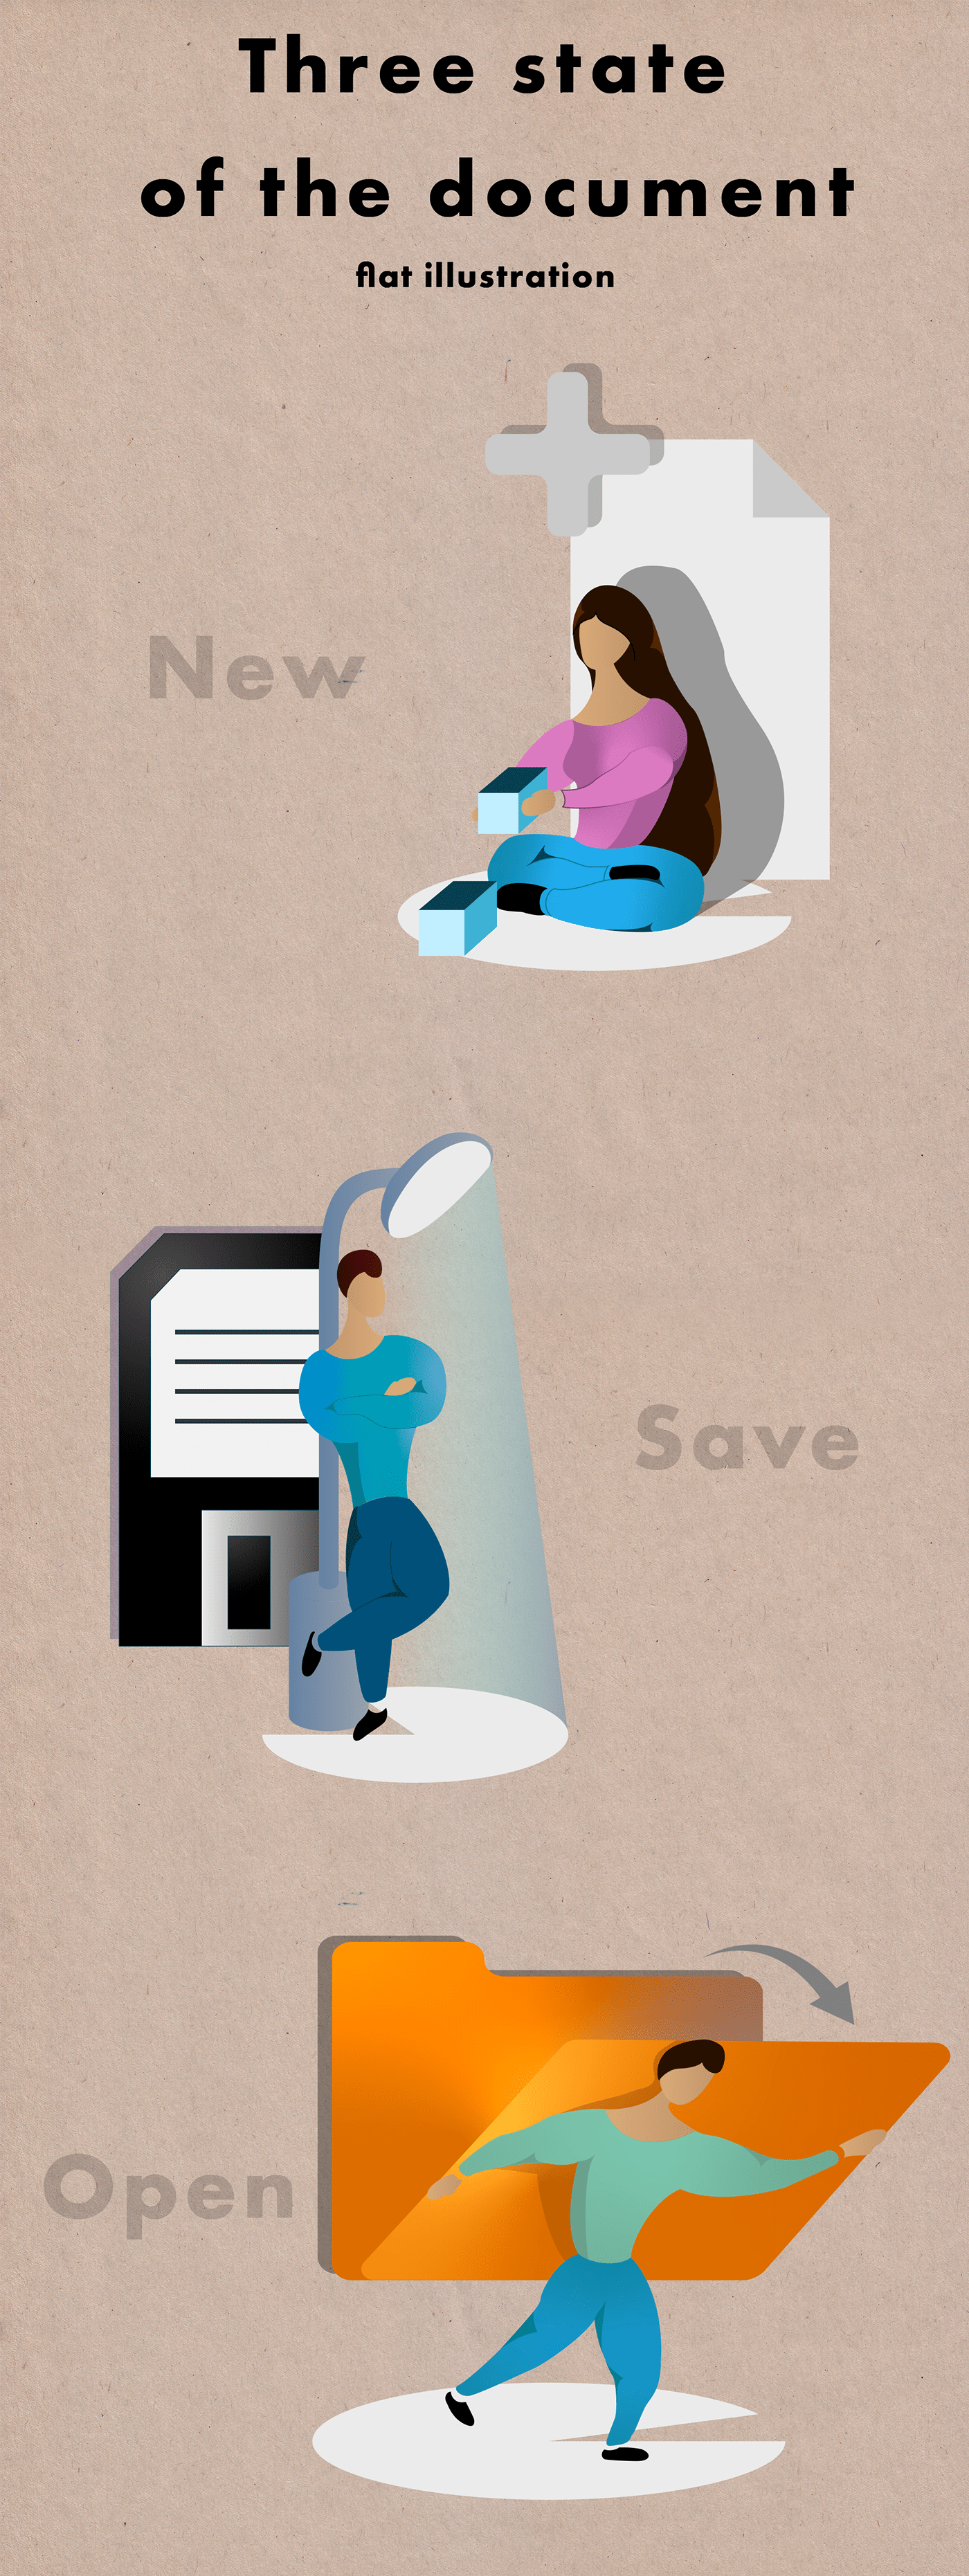 open new save document craft page Illustrator flat